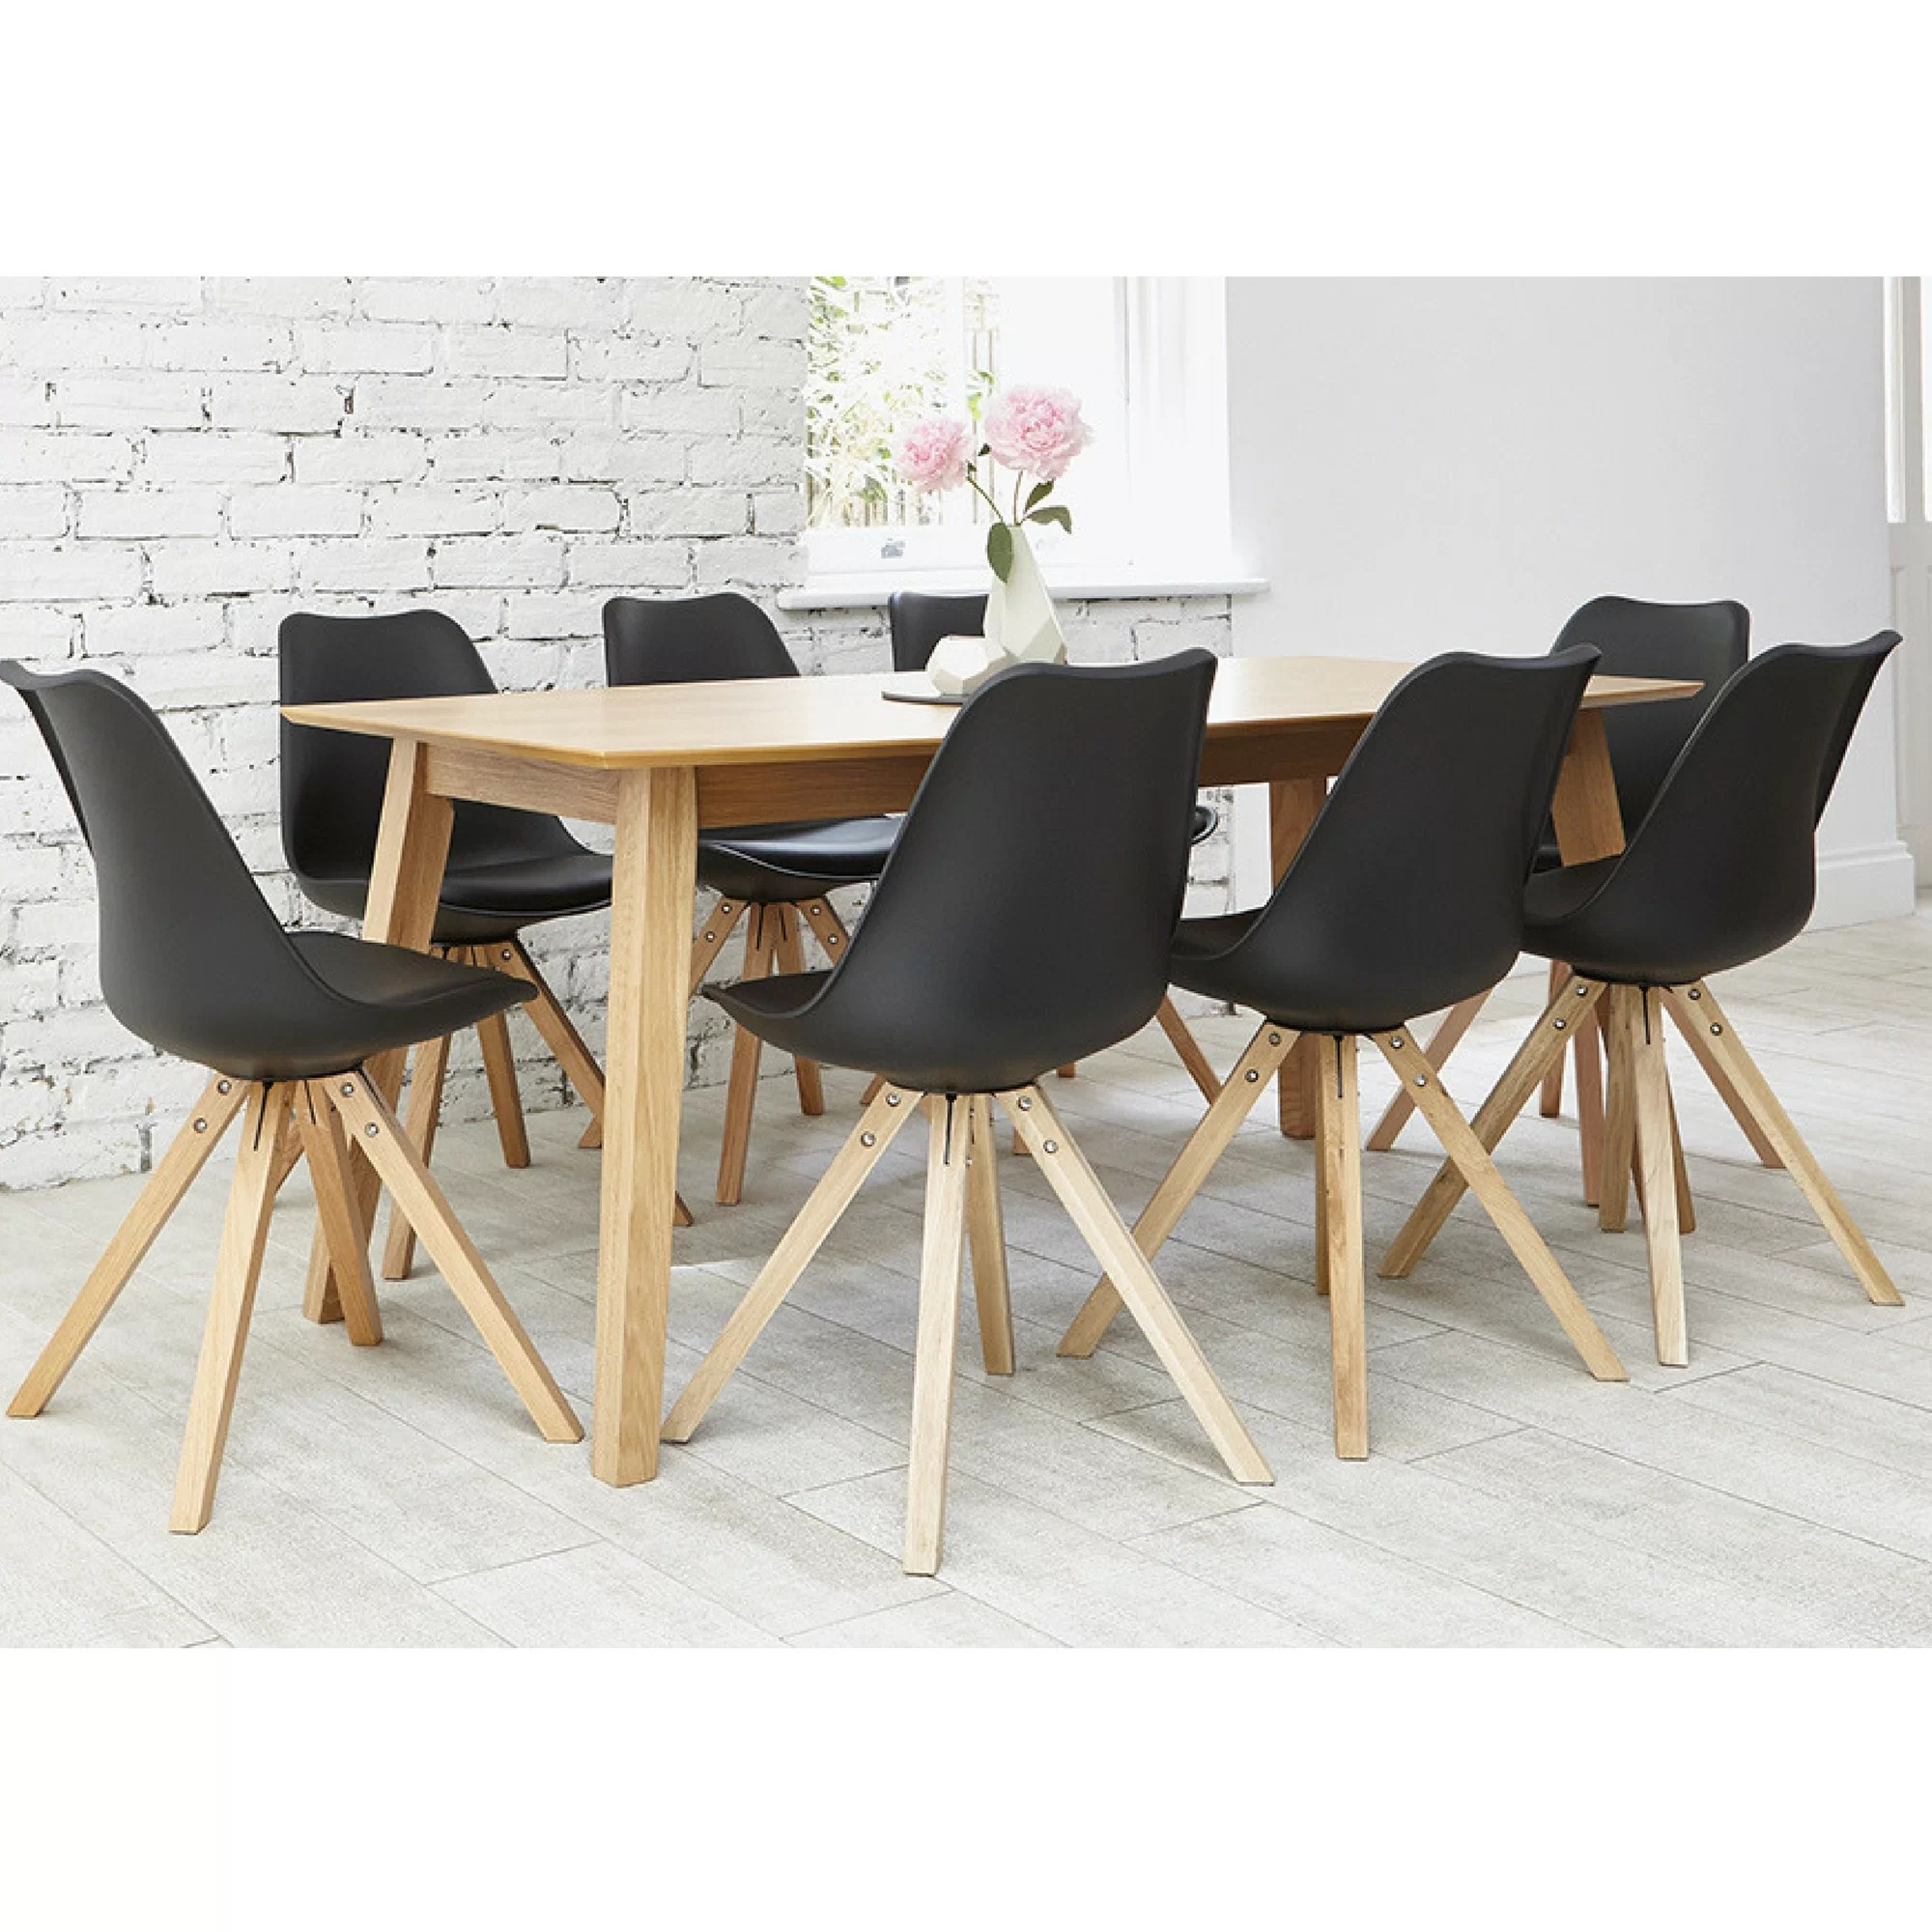 Dining Table 8 Chairs Greta Dining Set With 8 Chairs